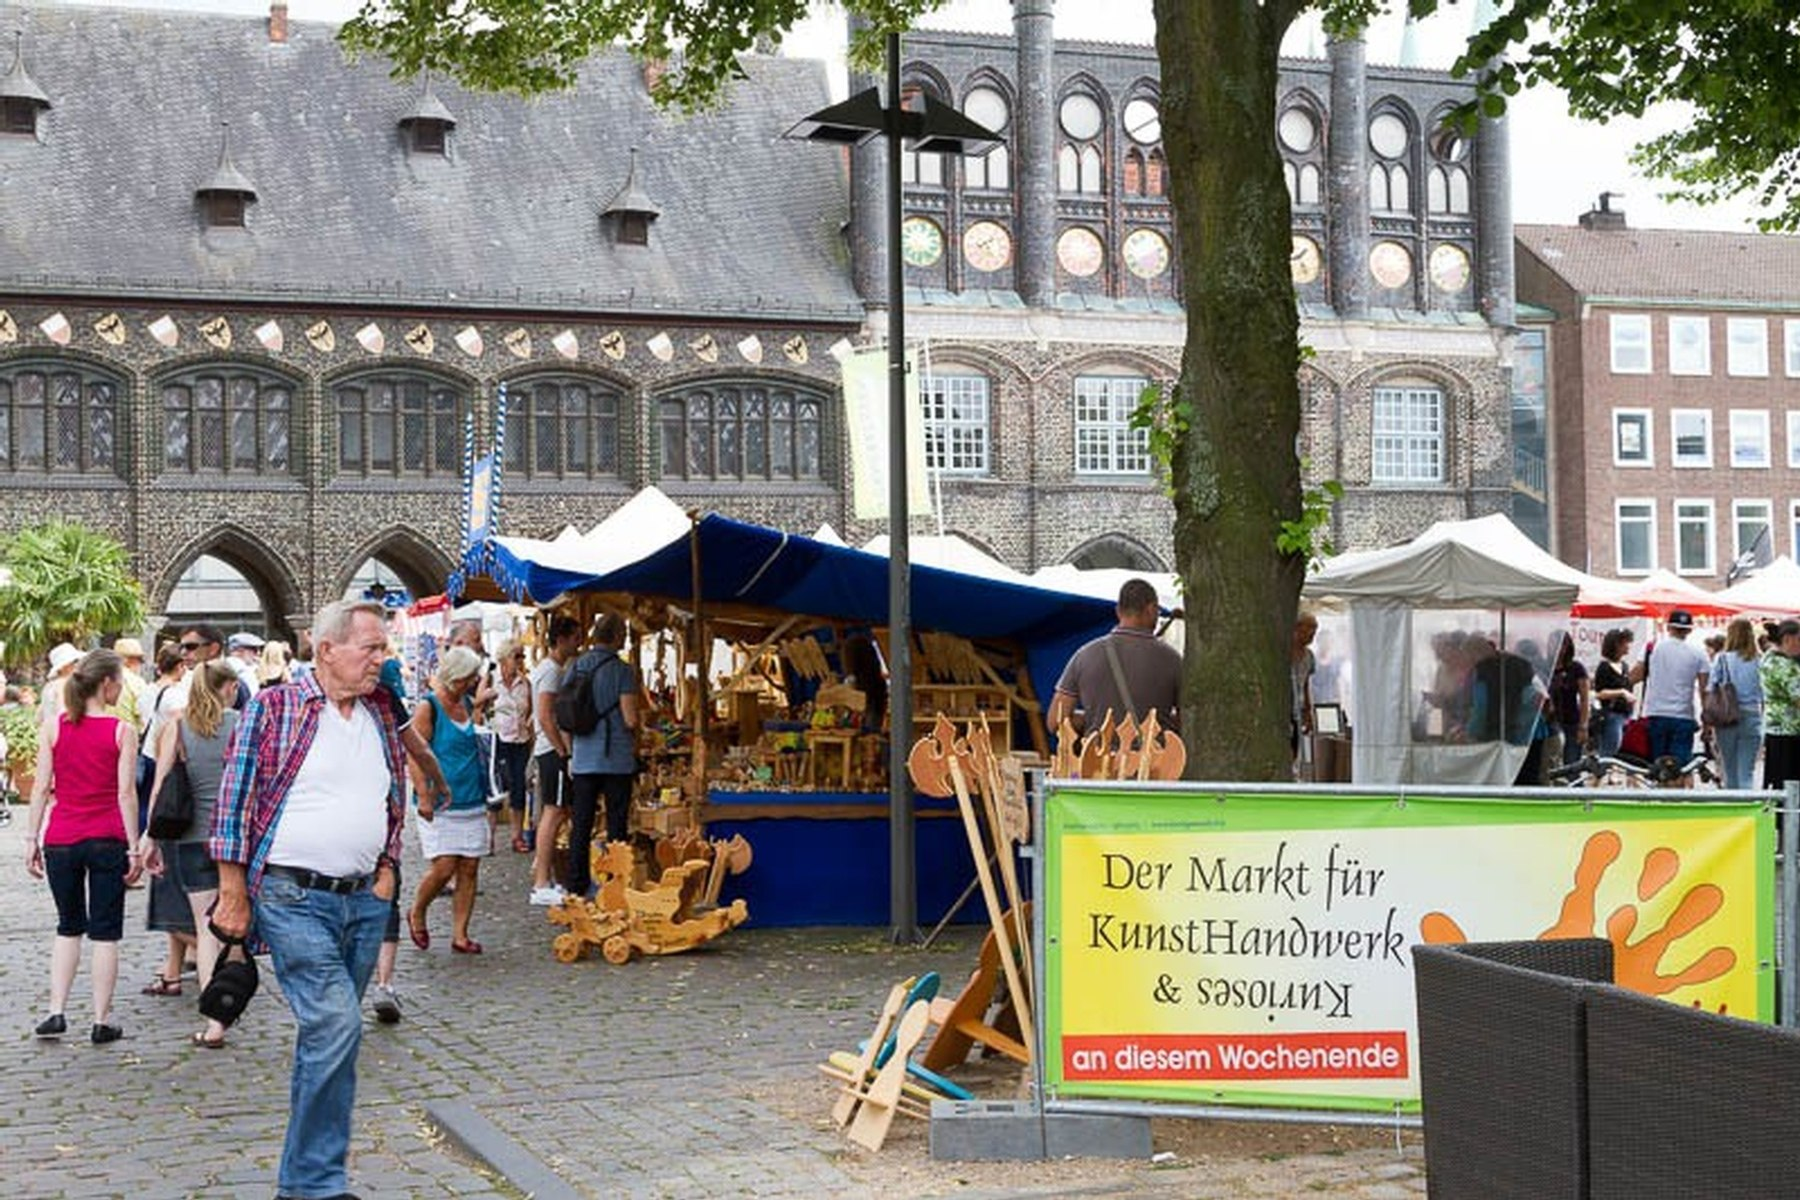 6 handgemacht markt auf dem l becker marktplatz shopping markt l beck altstadt. Black Bedroom Furniture Sets. Home Design Ideas